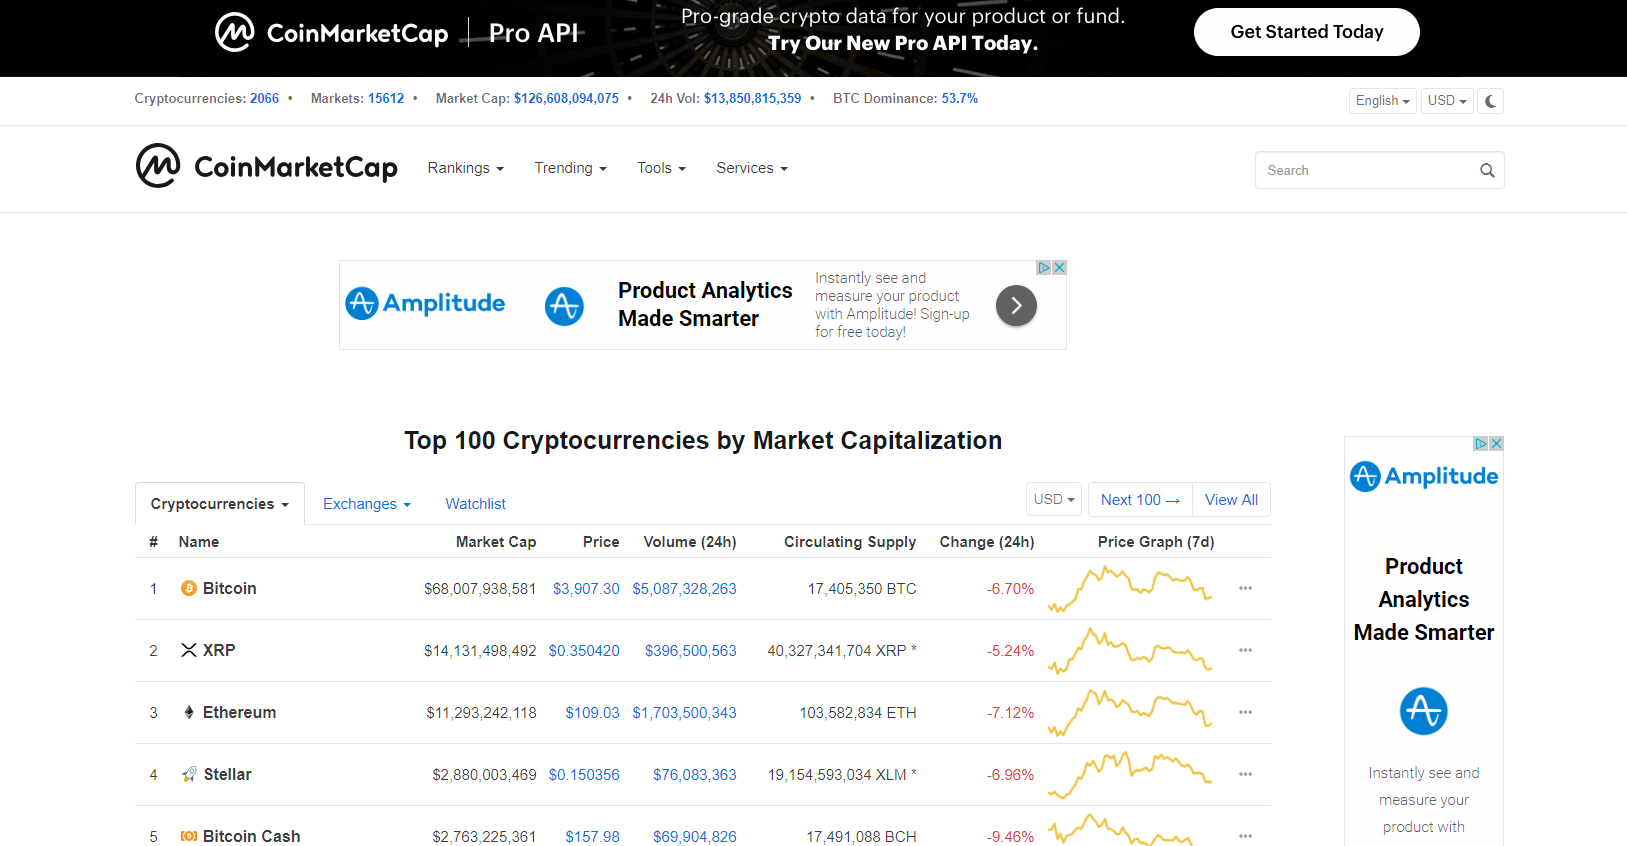 CoinMarketCap API on RapidAPI